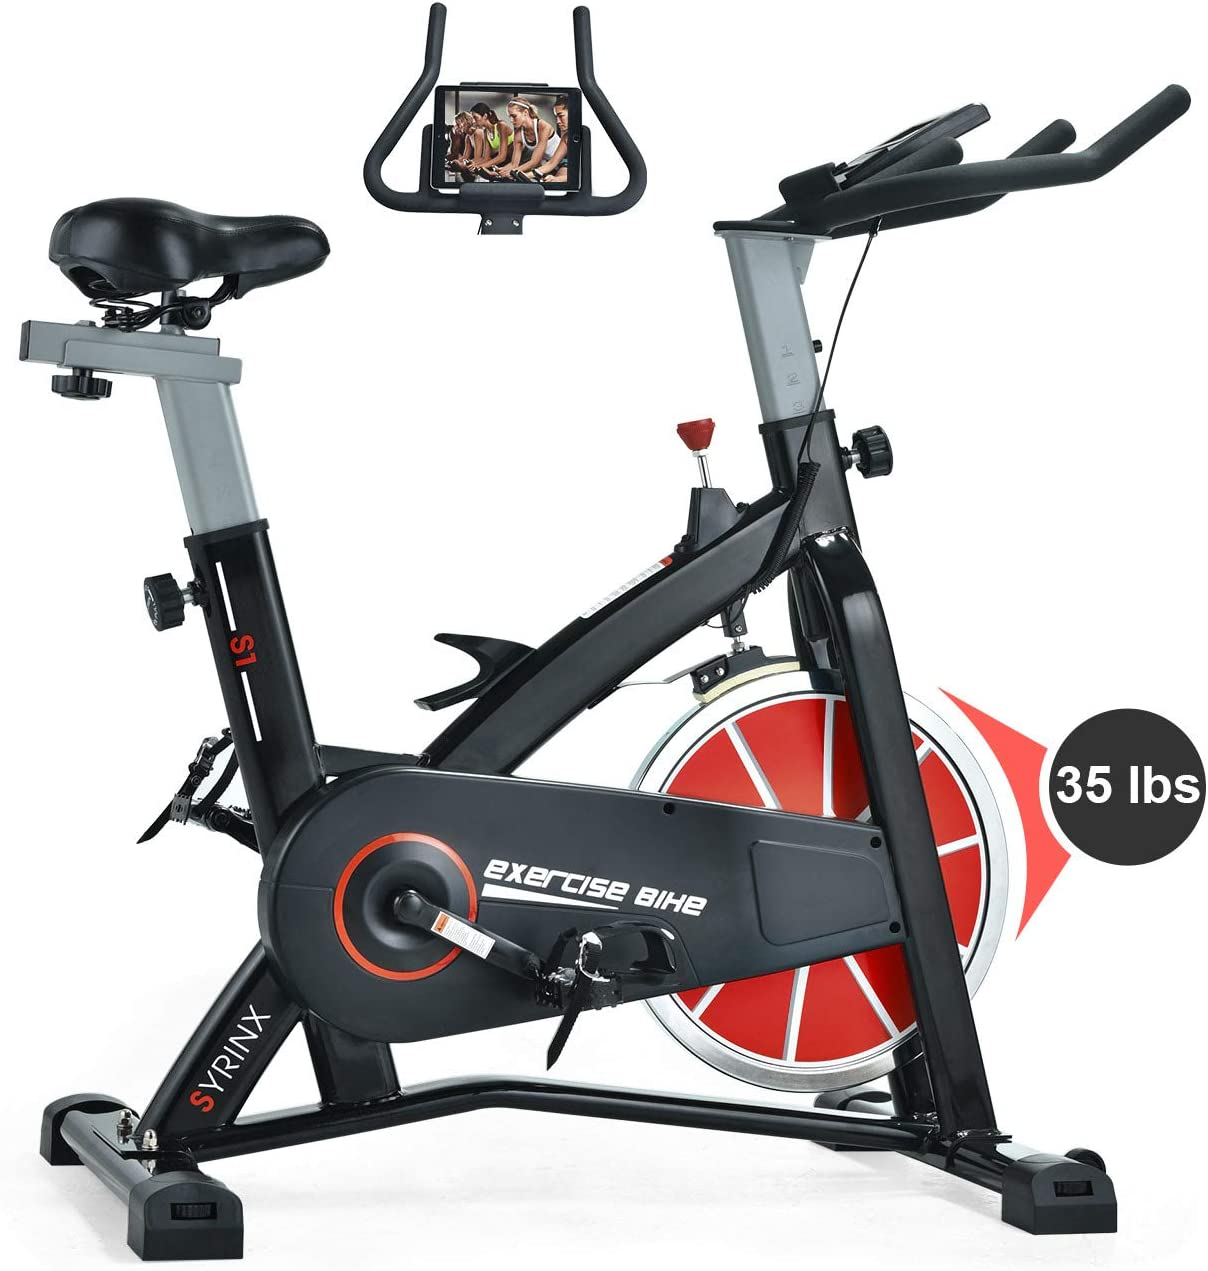 SYRINX Indoor Cycling Bike-Belt Drive Indoor Exercise Bike,Stationary Cycle Bike